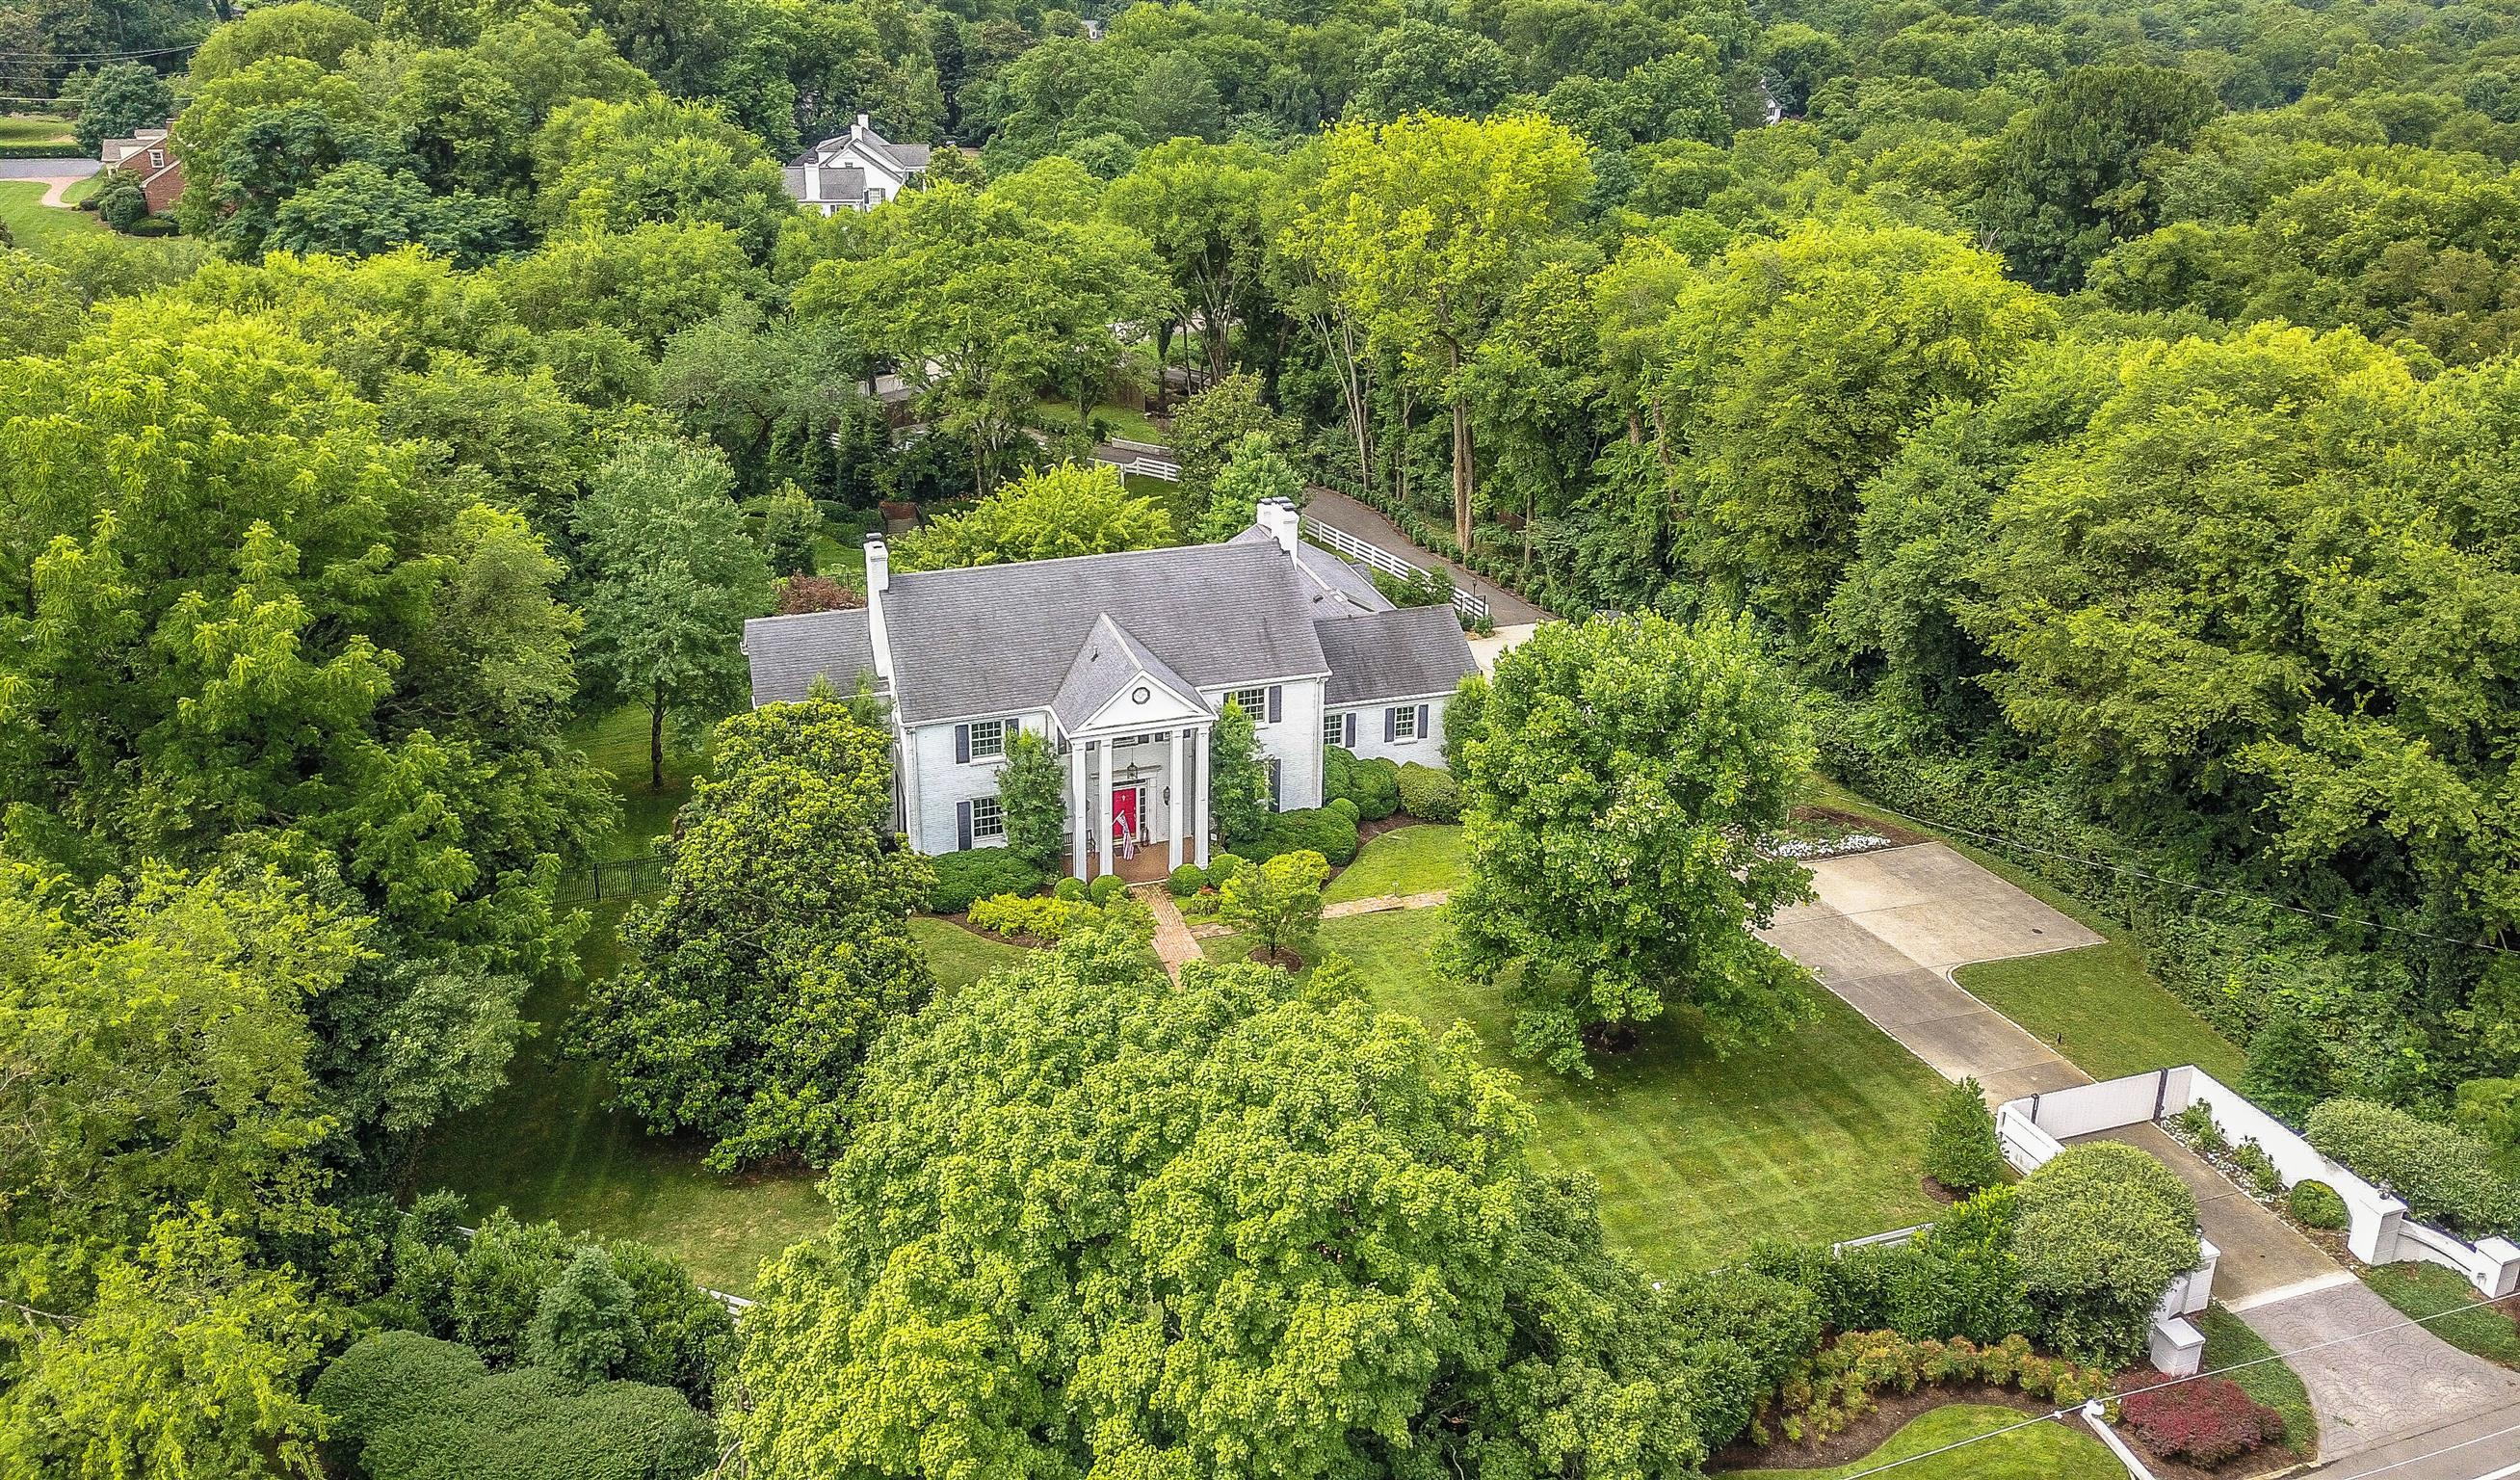 2120 Valley Brook Rd, Nashville, TN 37215 - Nashville, TN real estate listing